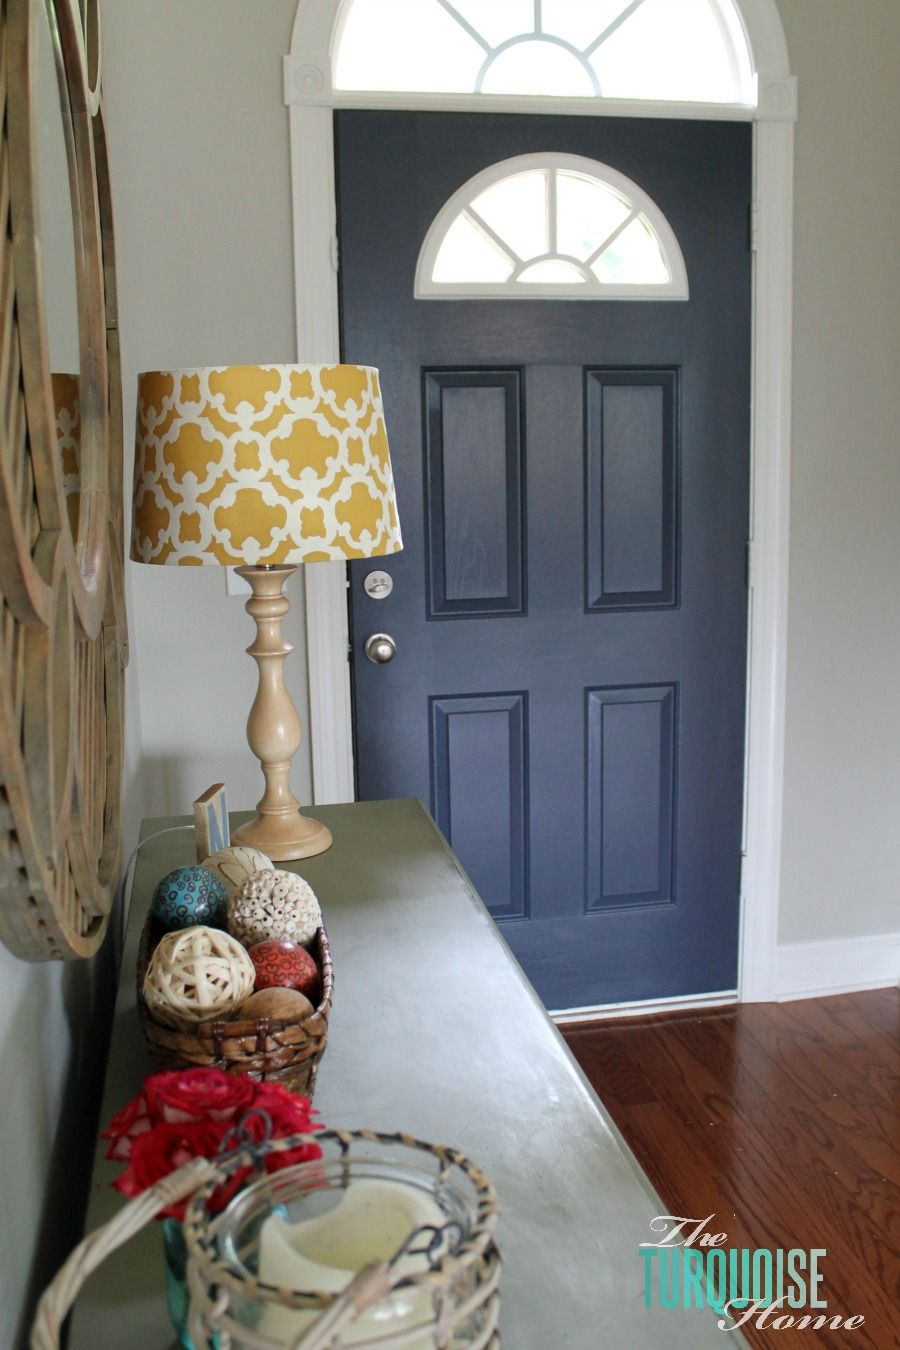 Exceptionnel I Shared With You On Friday How I Am In Love With This Color: Hale Navy.  And I Finally Painted Something Navy In My House: My Front Door!